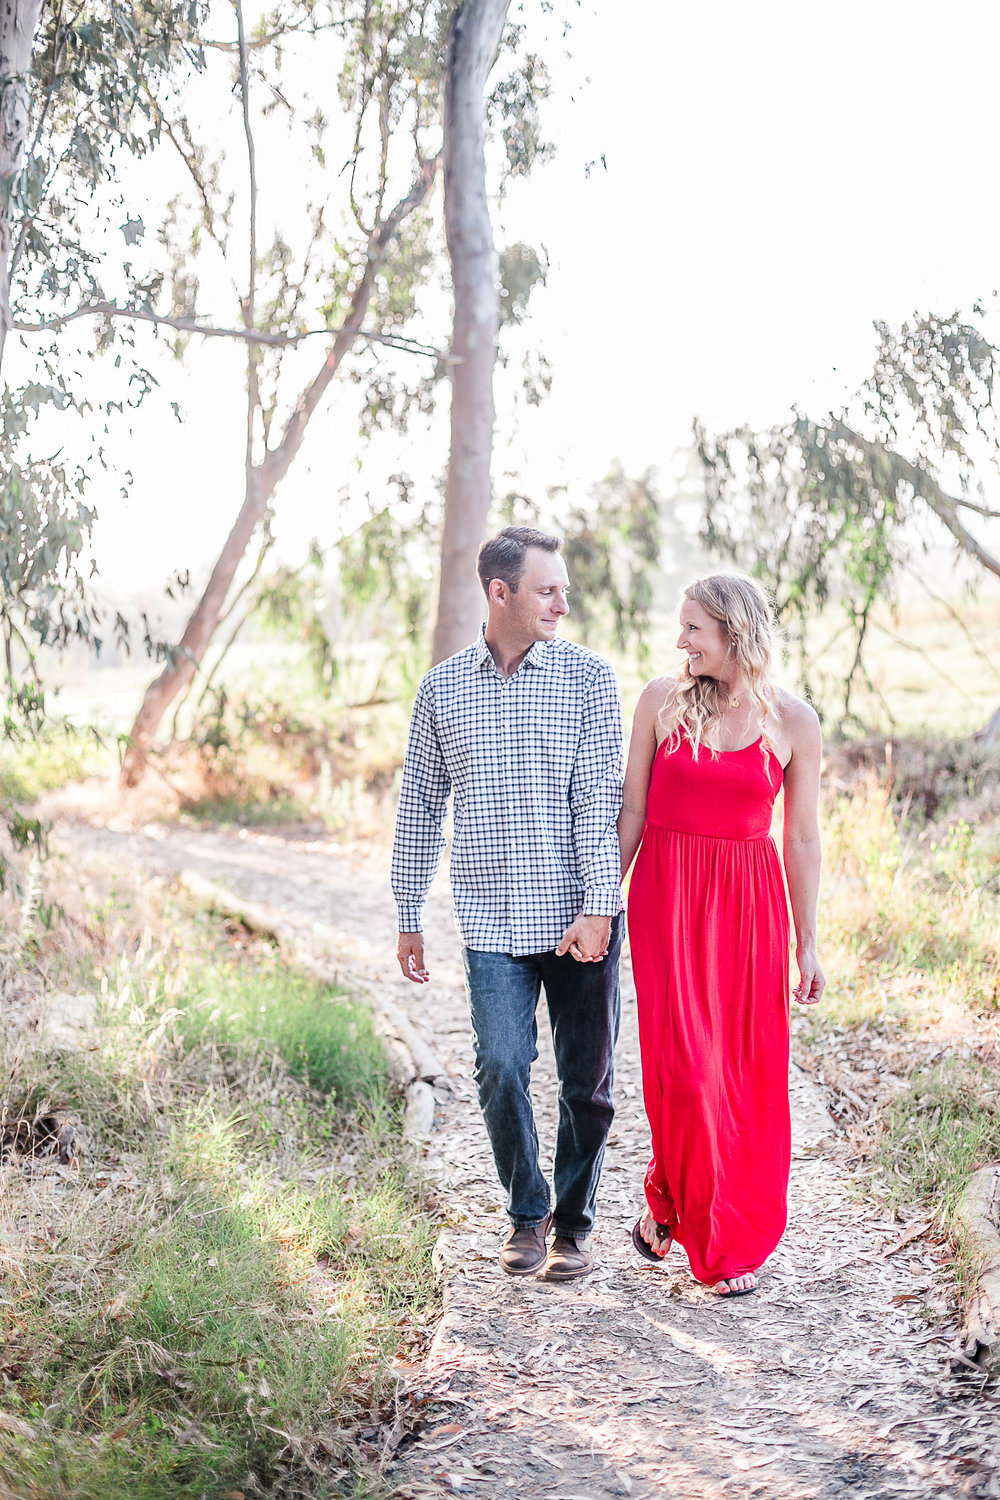 Heather_Smith_&_Chad_Patteson_San_Elijo_Lagoon_Solana_beach_Engagment_Session_2017-7.jpg